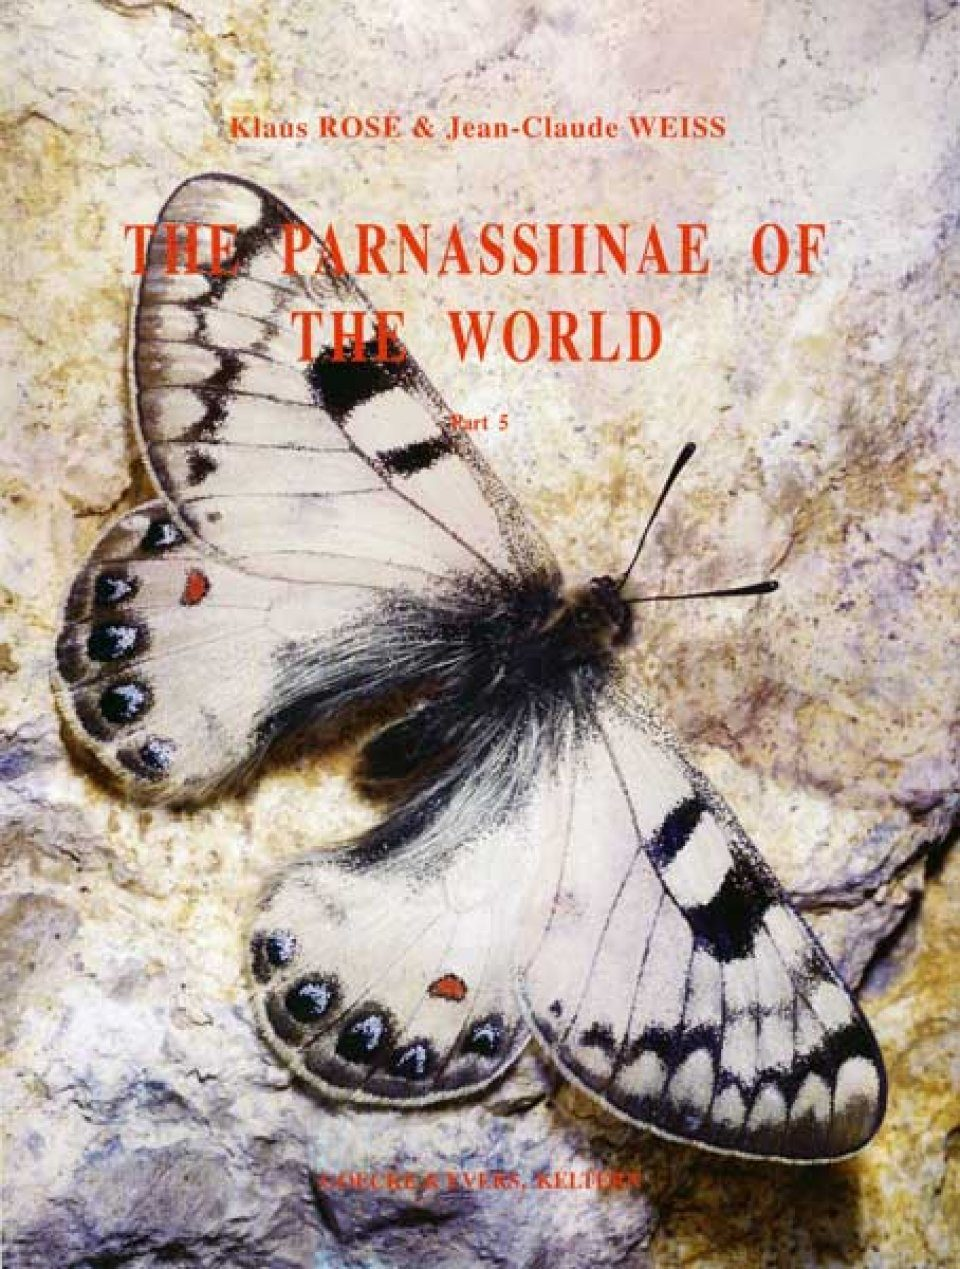 The Parnassiinae of the World, Volume 5: Errata and Addendum to Vols. 1 to 4 [English / French]